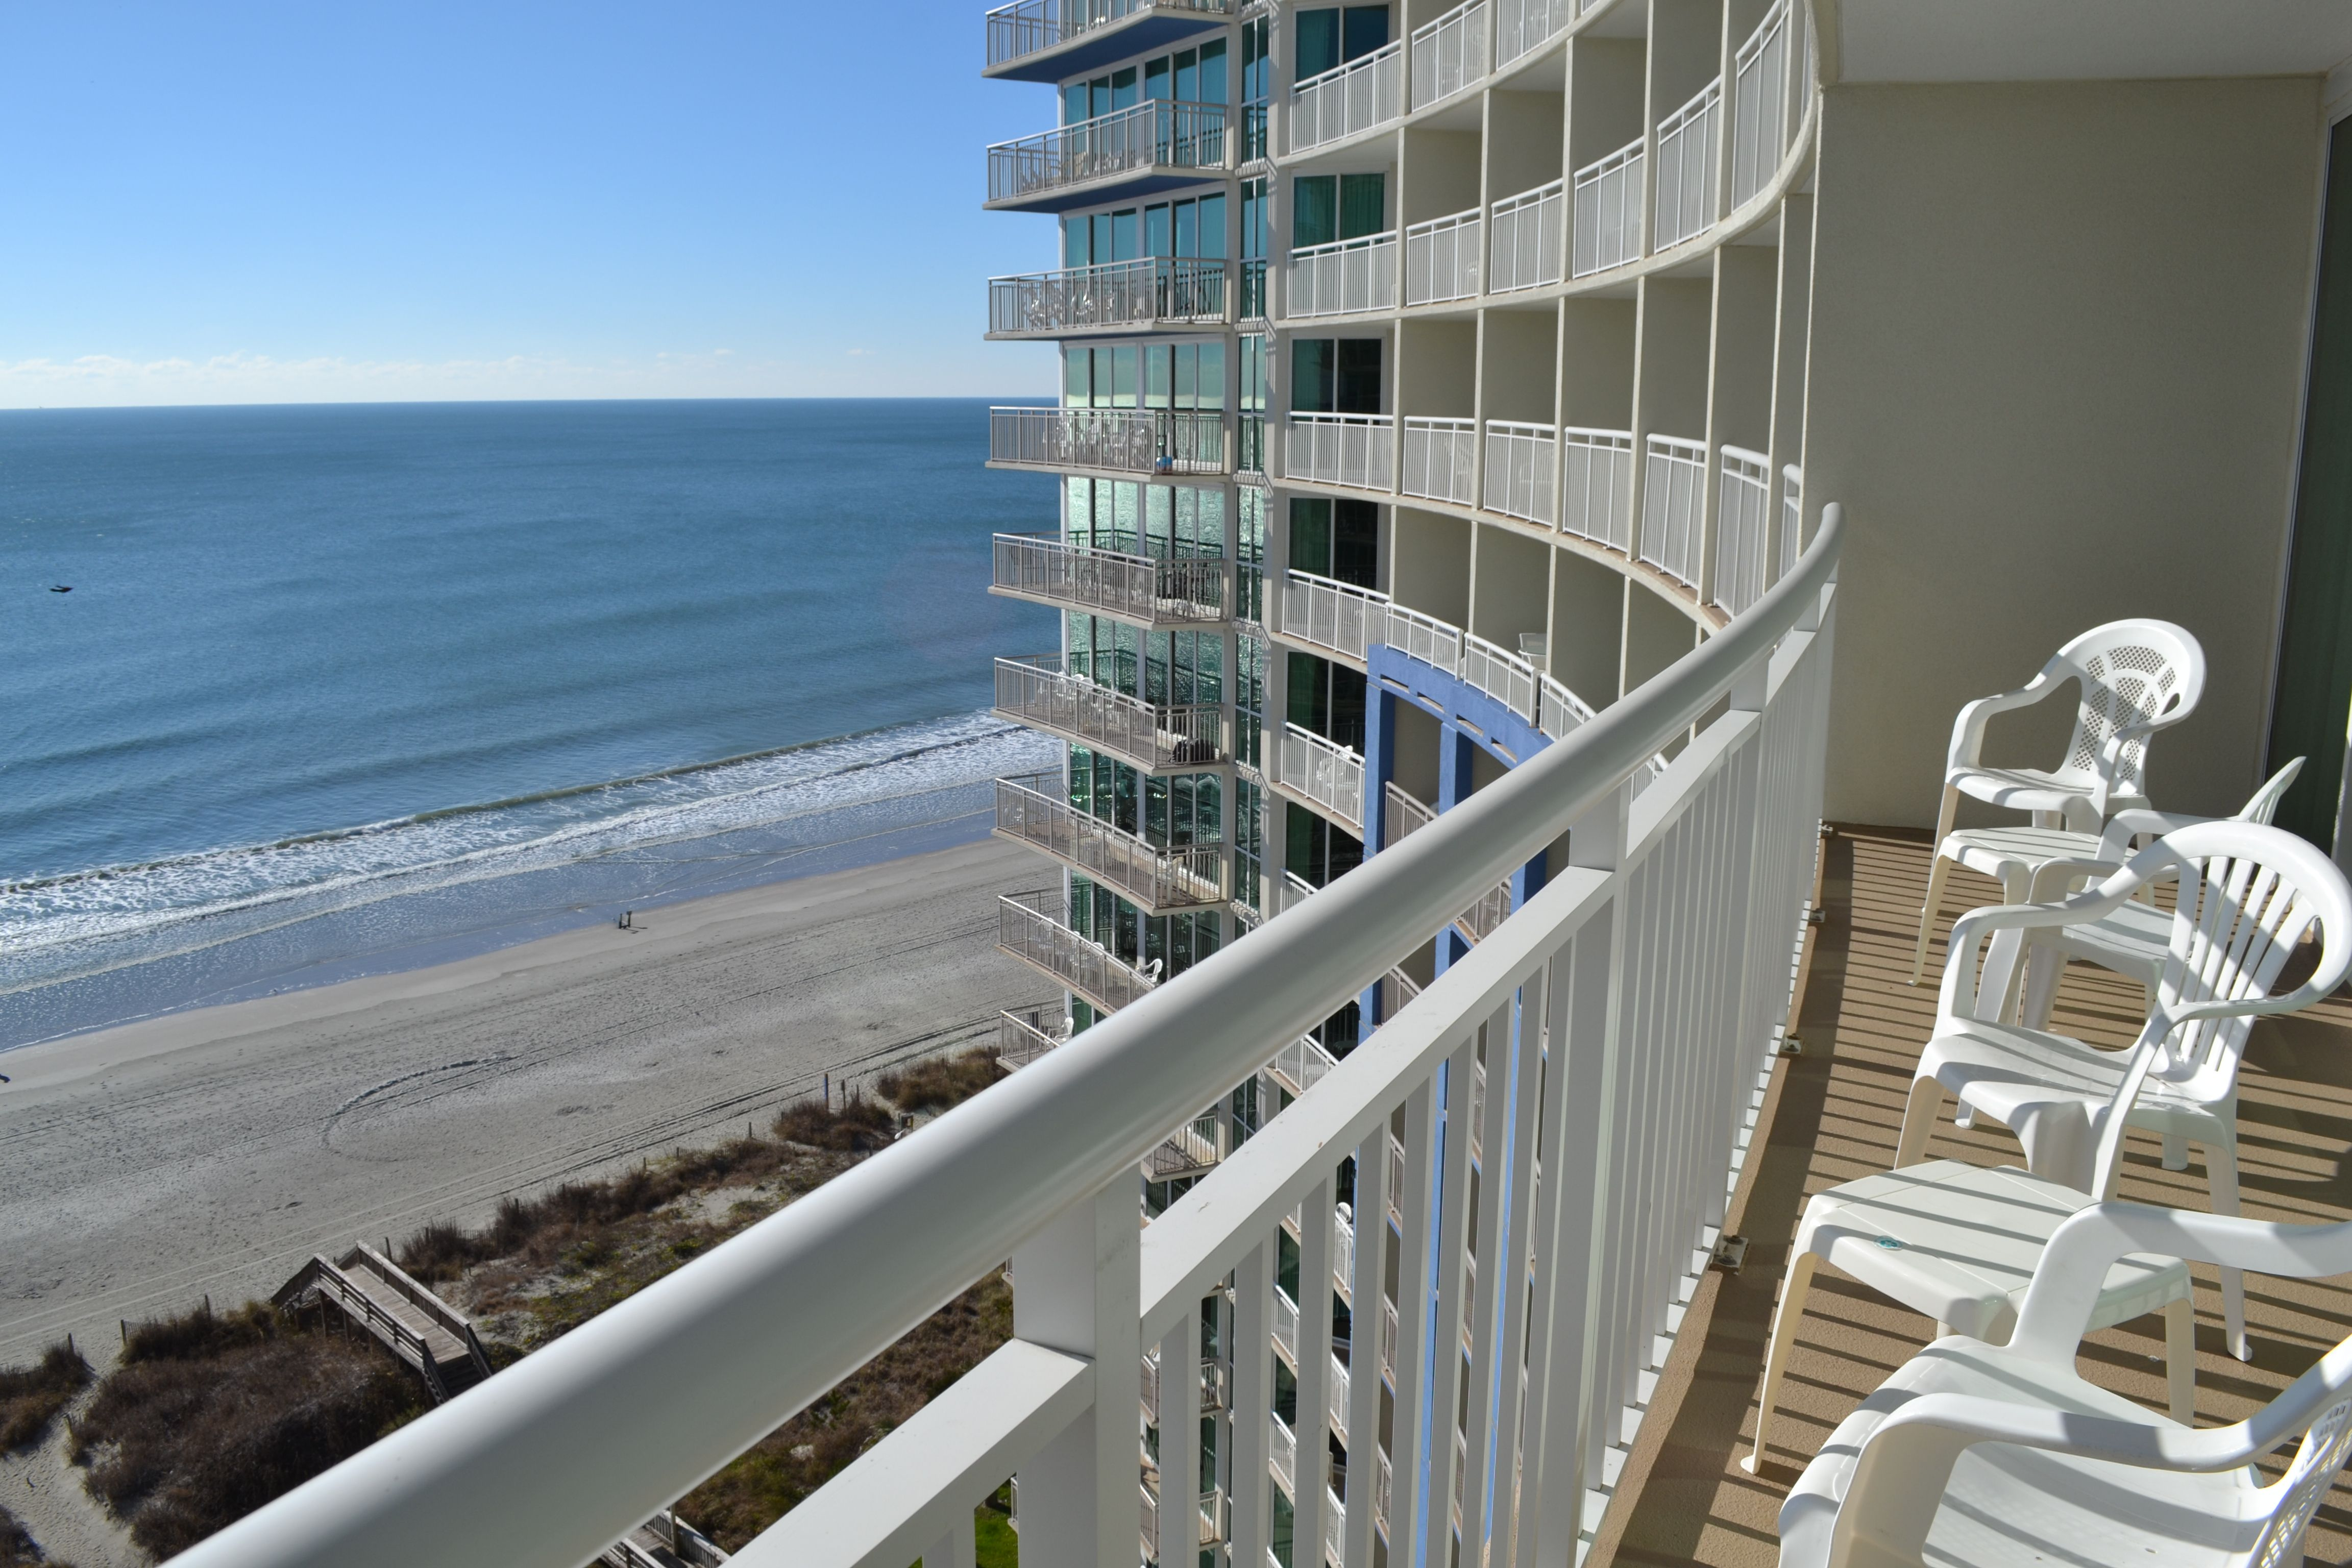 Enjoy your own private balcony overlooking the ocean at